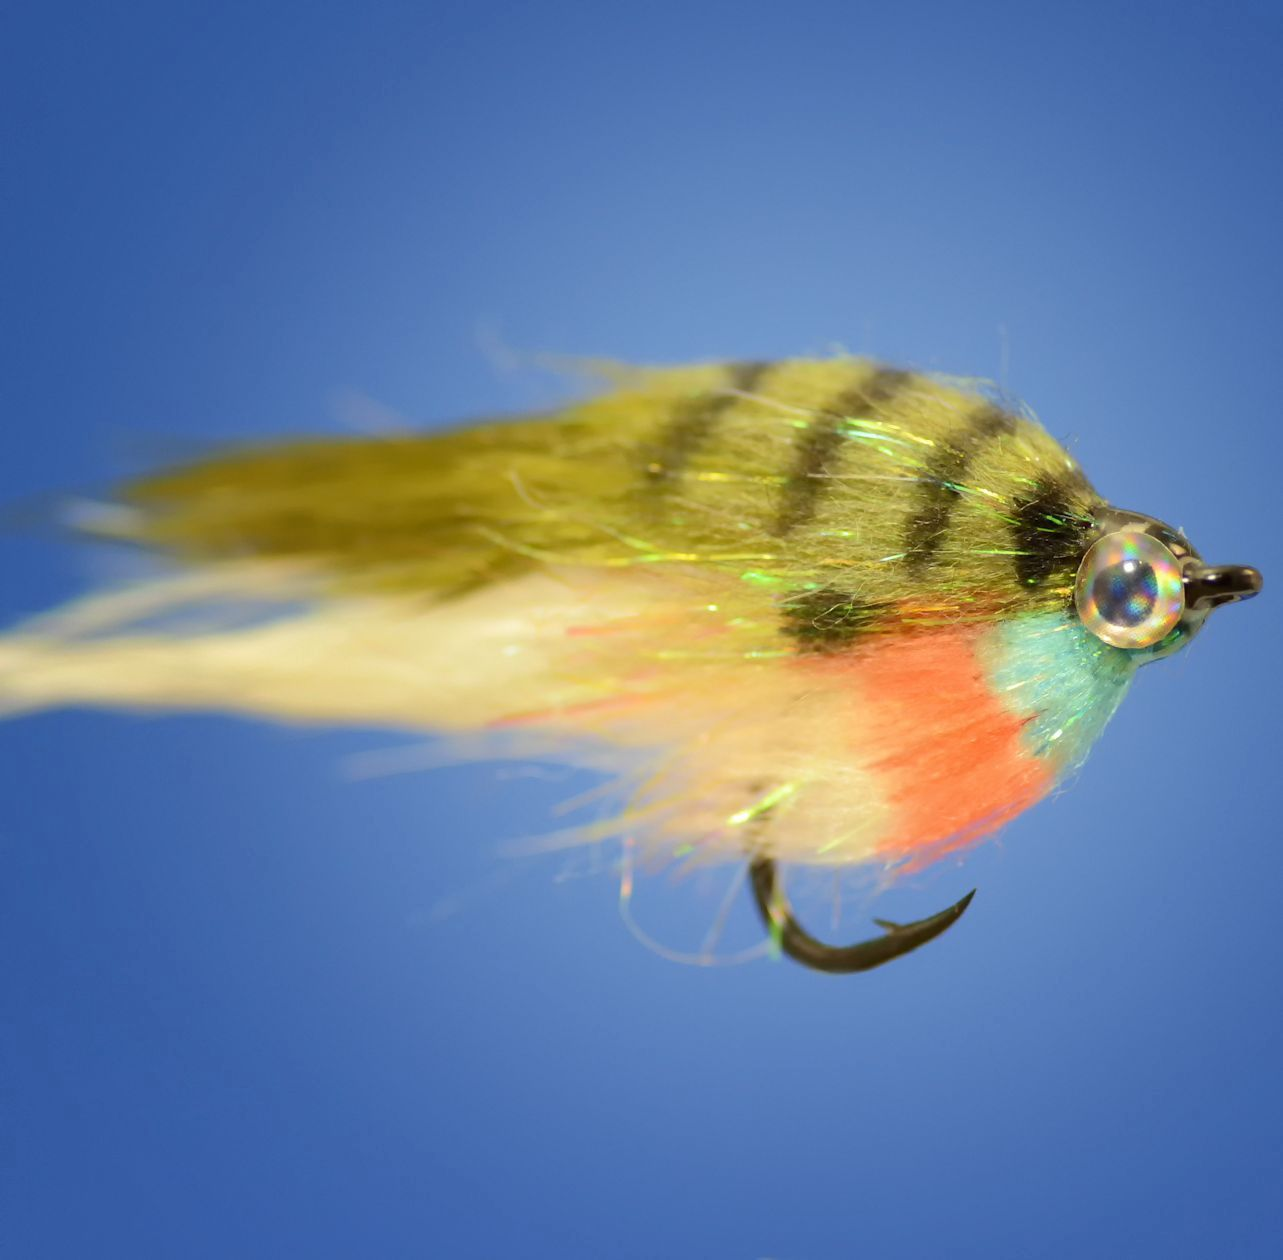 Cheech's Low Fat Minnow - Fly Fish Food -- Fly Tying and Fly